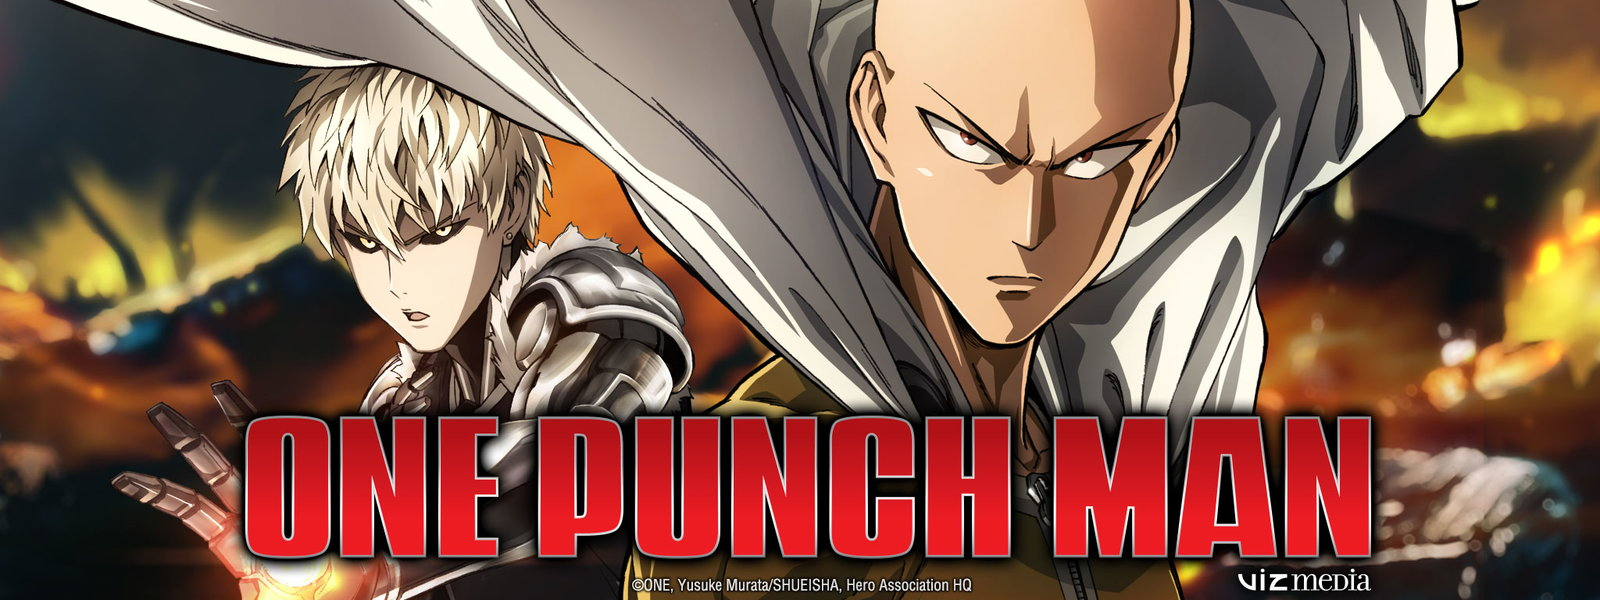 madman anime festival interview with the one punch man guests